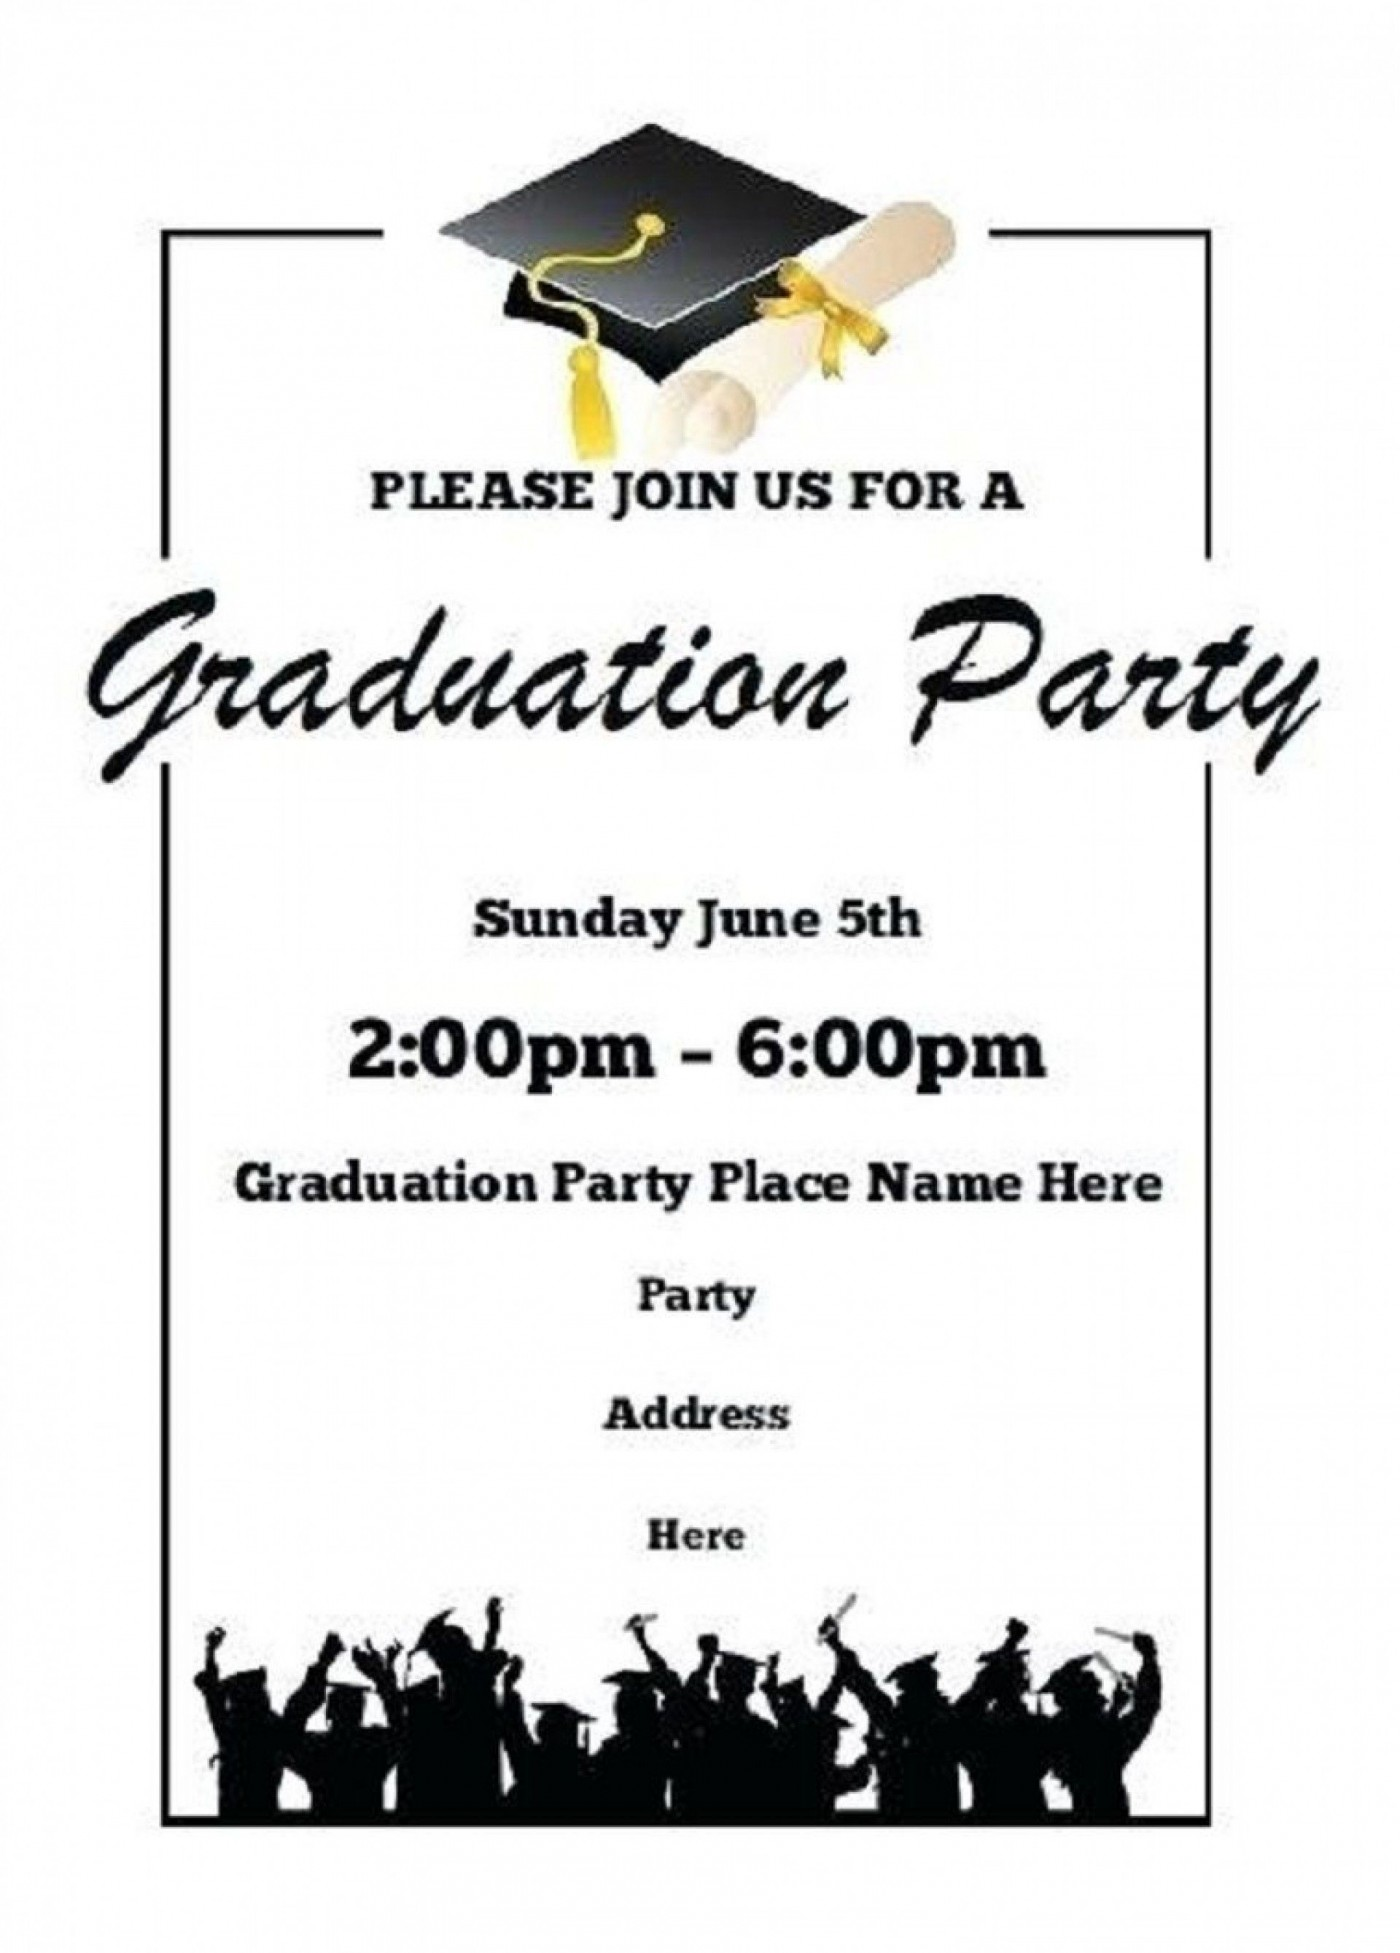 002 Singular Free Printable Graduation Invitation Template High Resolution  Party For Word1400